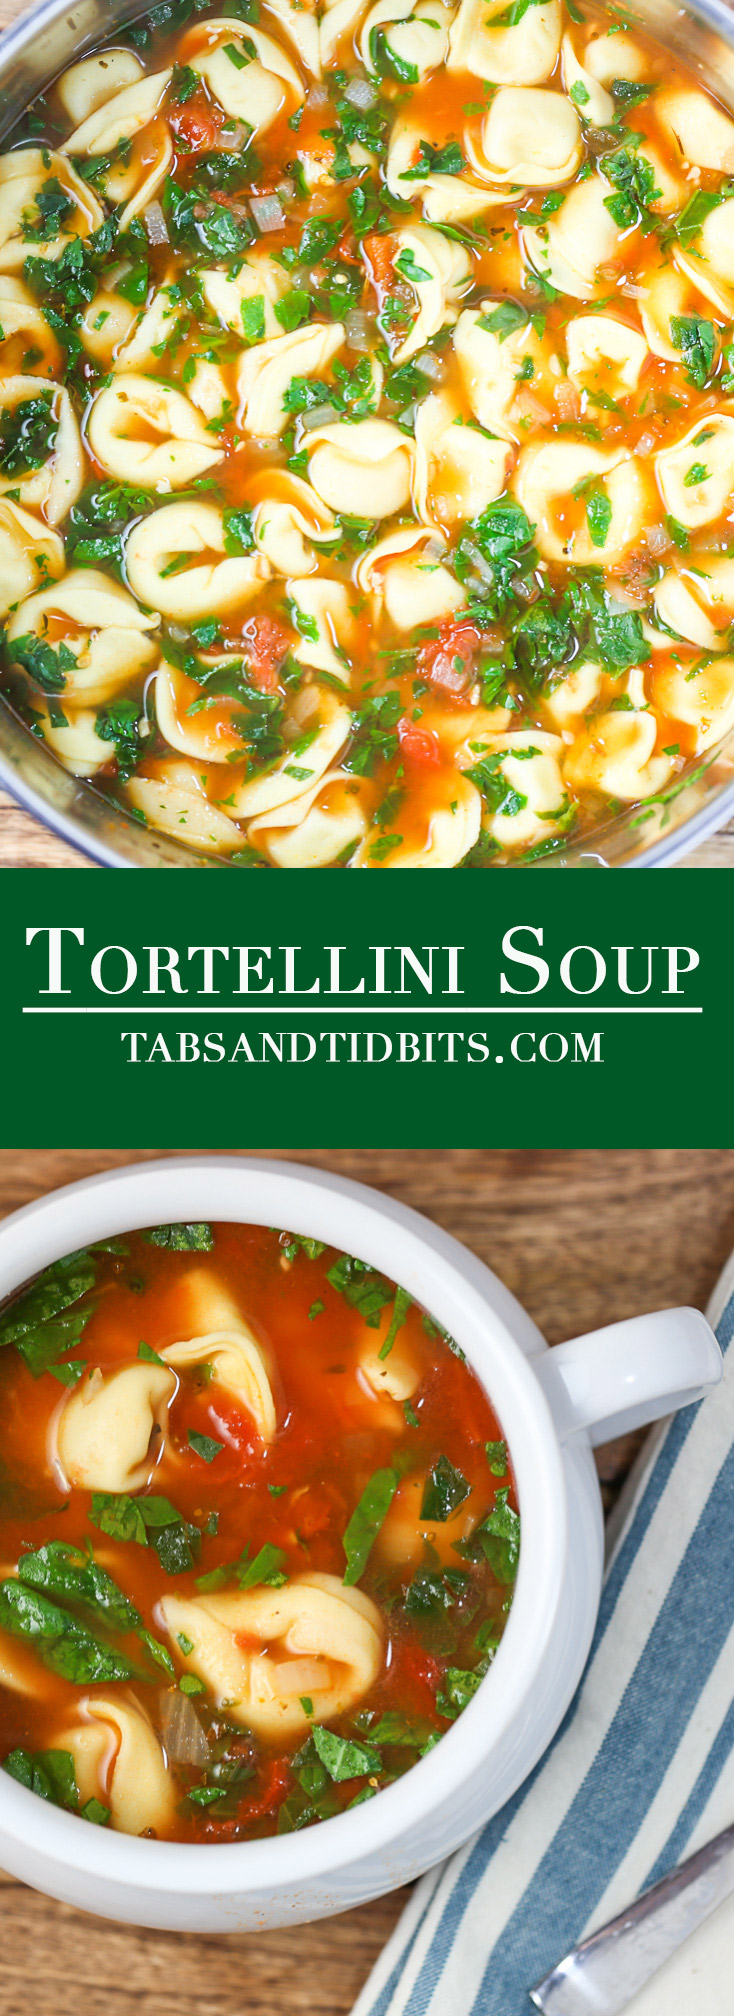 A quick and easy soup filled with tomatoes, fresh tomatoes, and cheese tortellini!